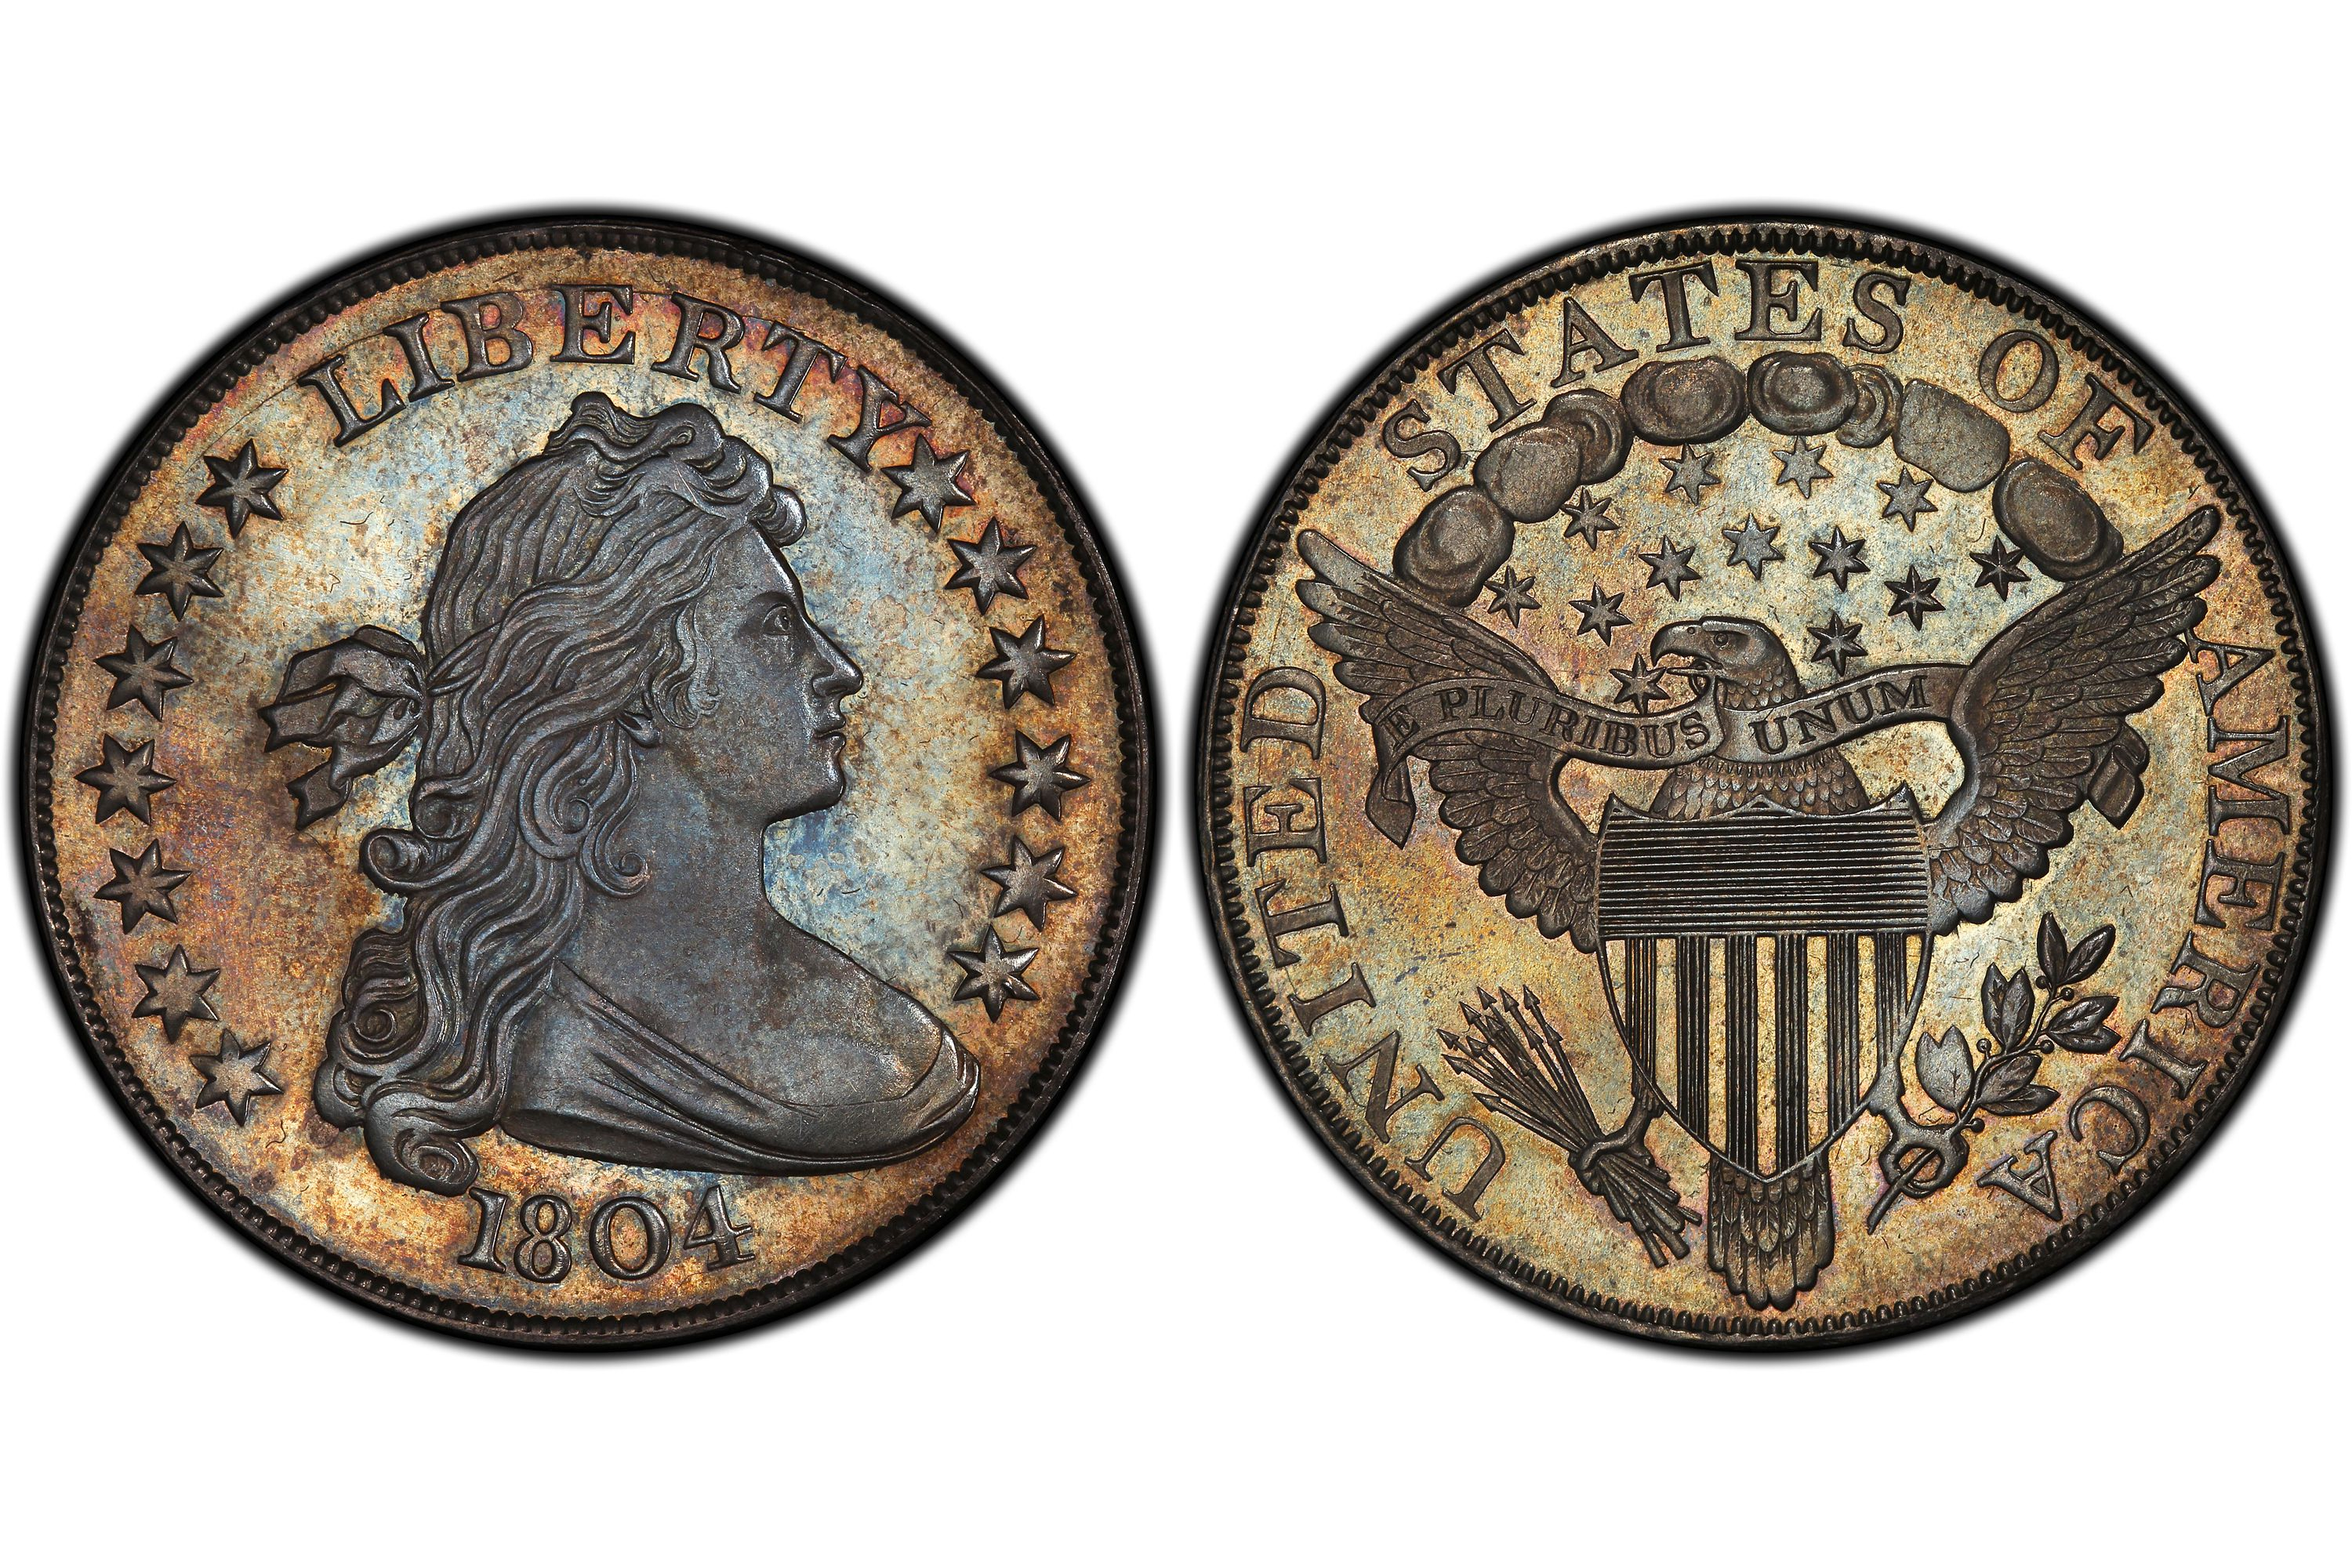 1804 Draped Bust Silver Dollar, Class I, Watters-Childs Specimen